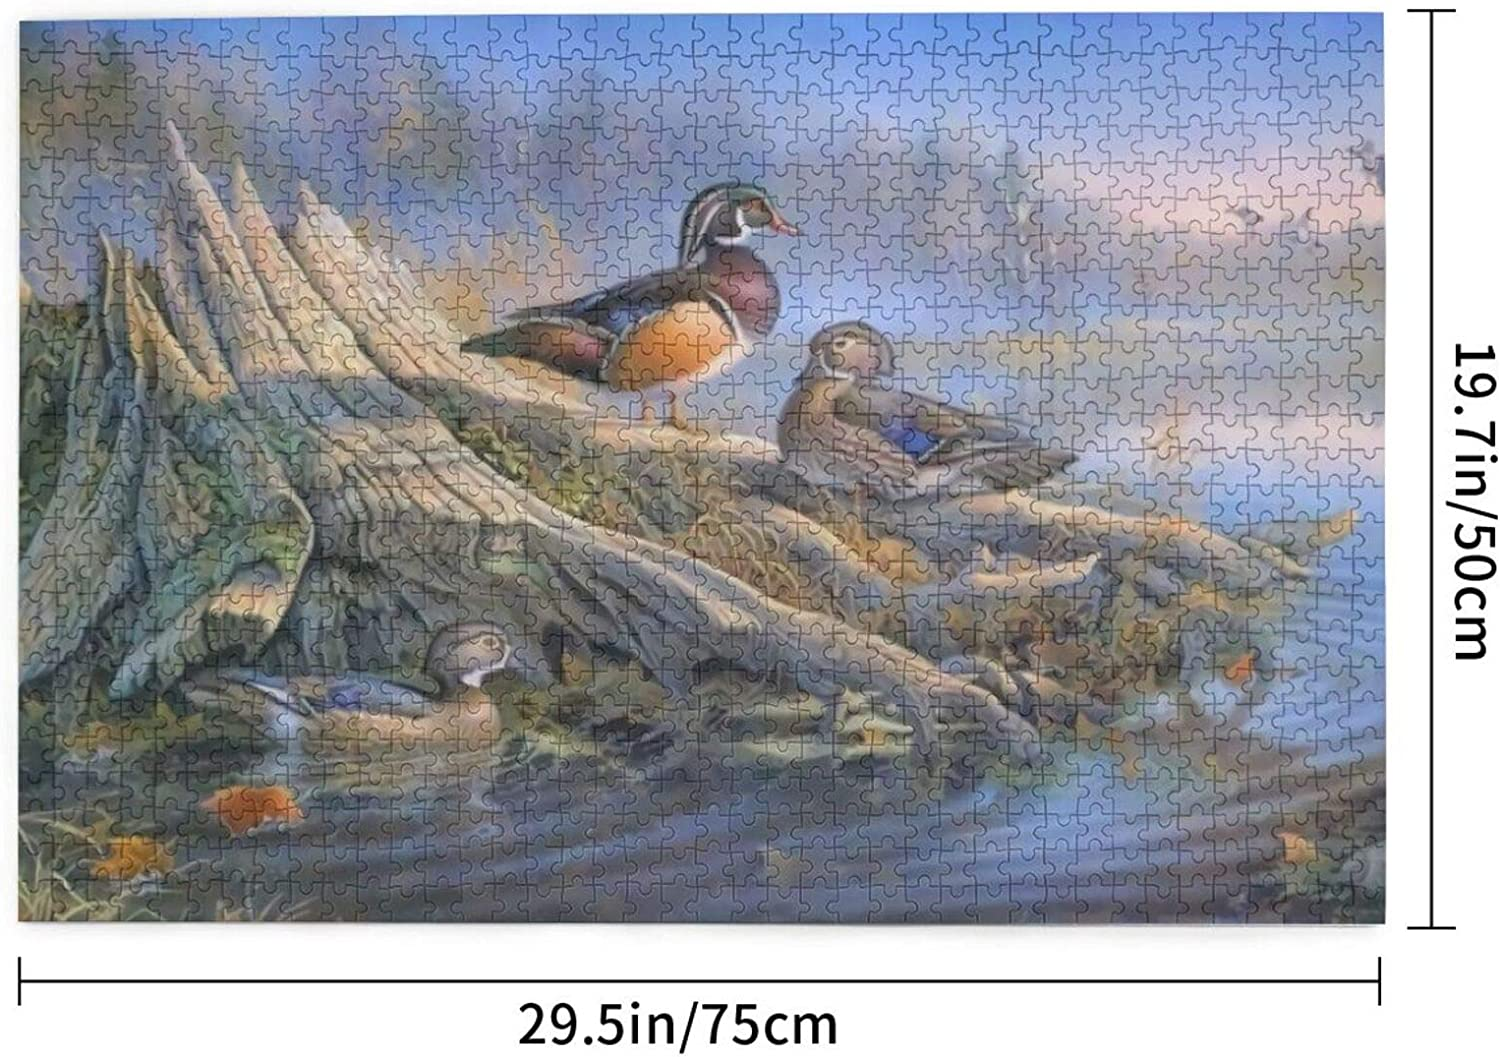 antcreptson Wood Duck Old Tree Lake Animal 1000 Piece Puzzles for Adults and Teen DIY Collectibles Home Decoration